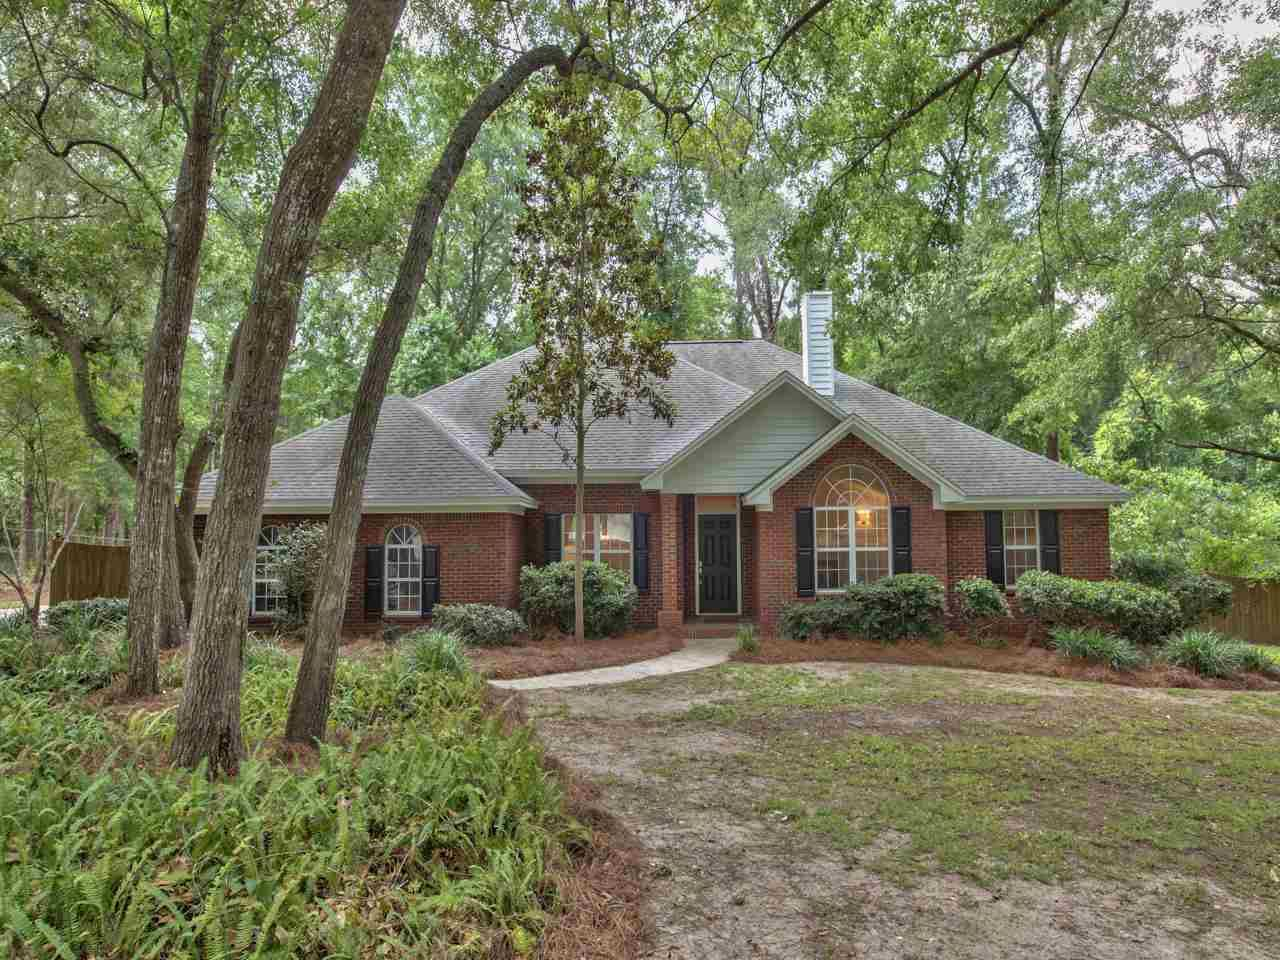 Photo of 2022 Dyrehaven Drive, TALLAHASSEE, FL 32317 (MLS # 319058)